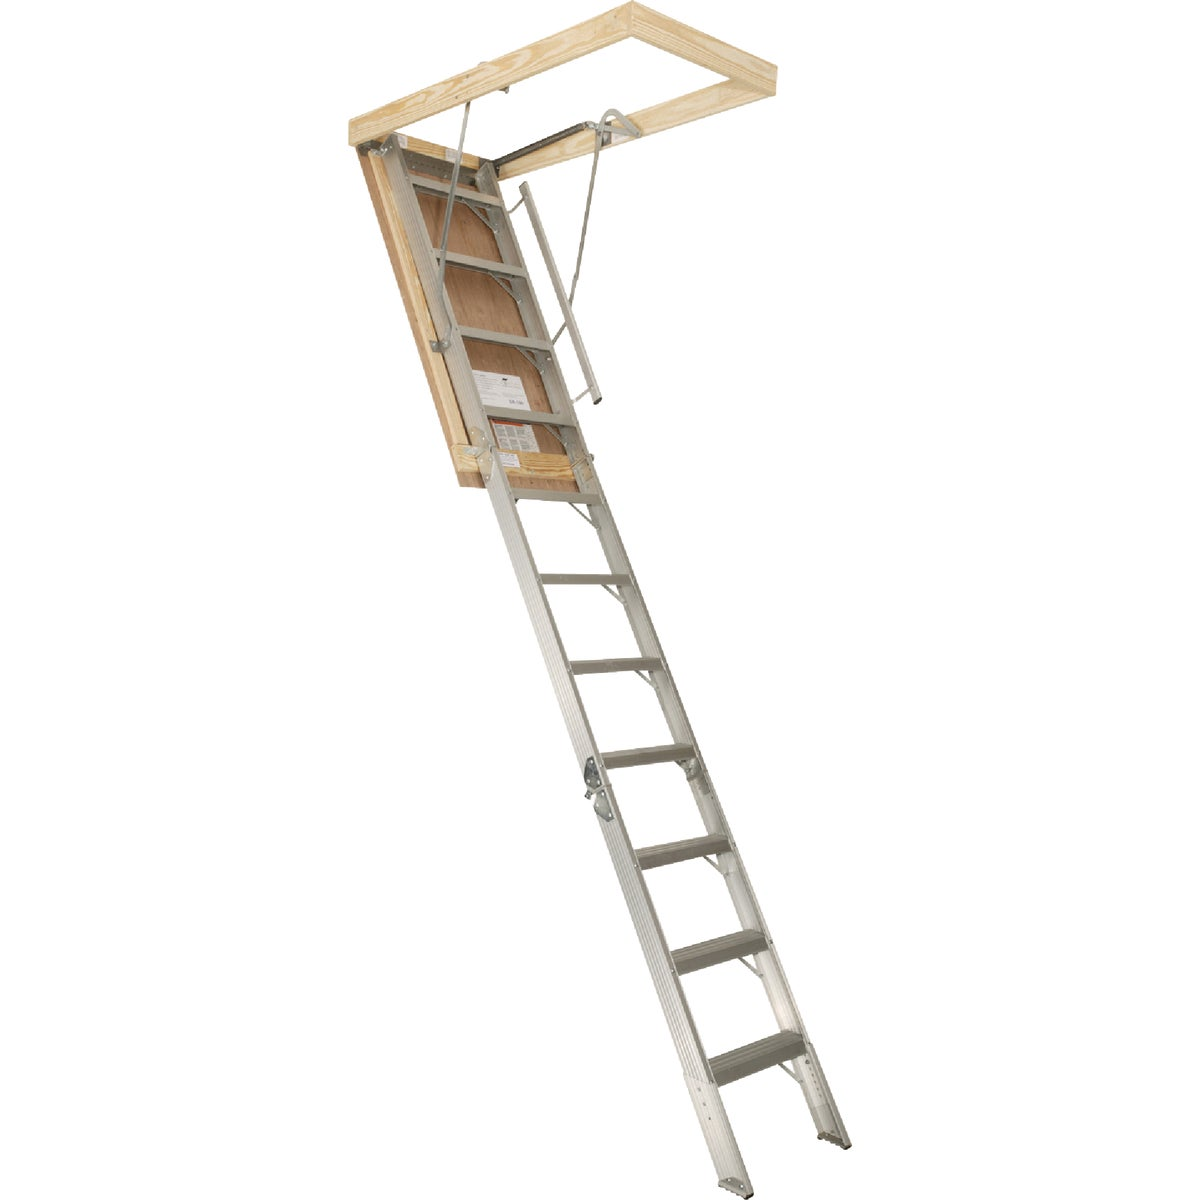 22X120 SUPRE ATTIC STAIR - SAT100 by Louisville Ladder